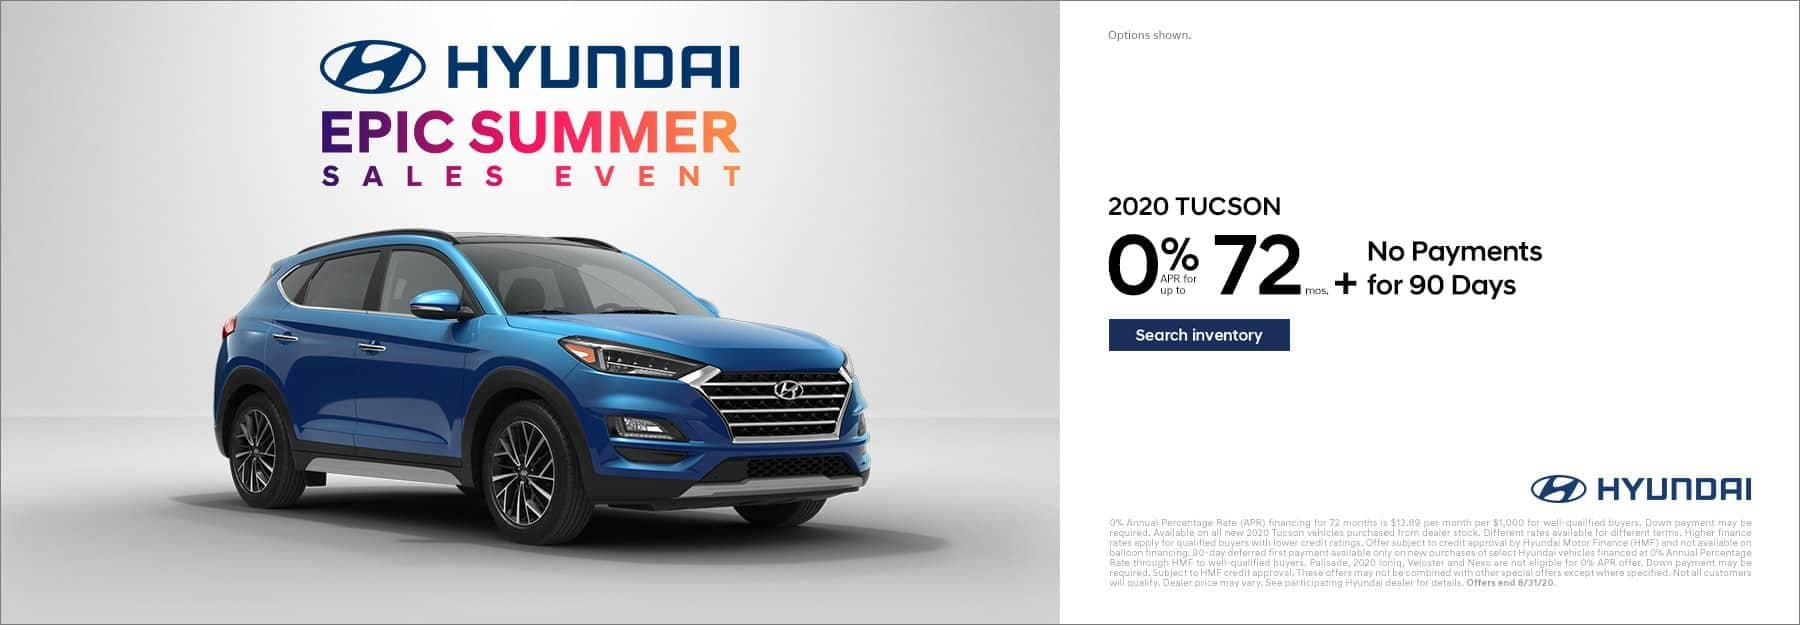 Hyundai Epic Summer Sales Event Slider Image